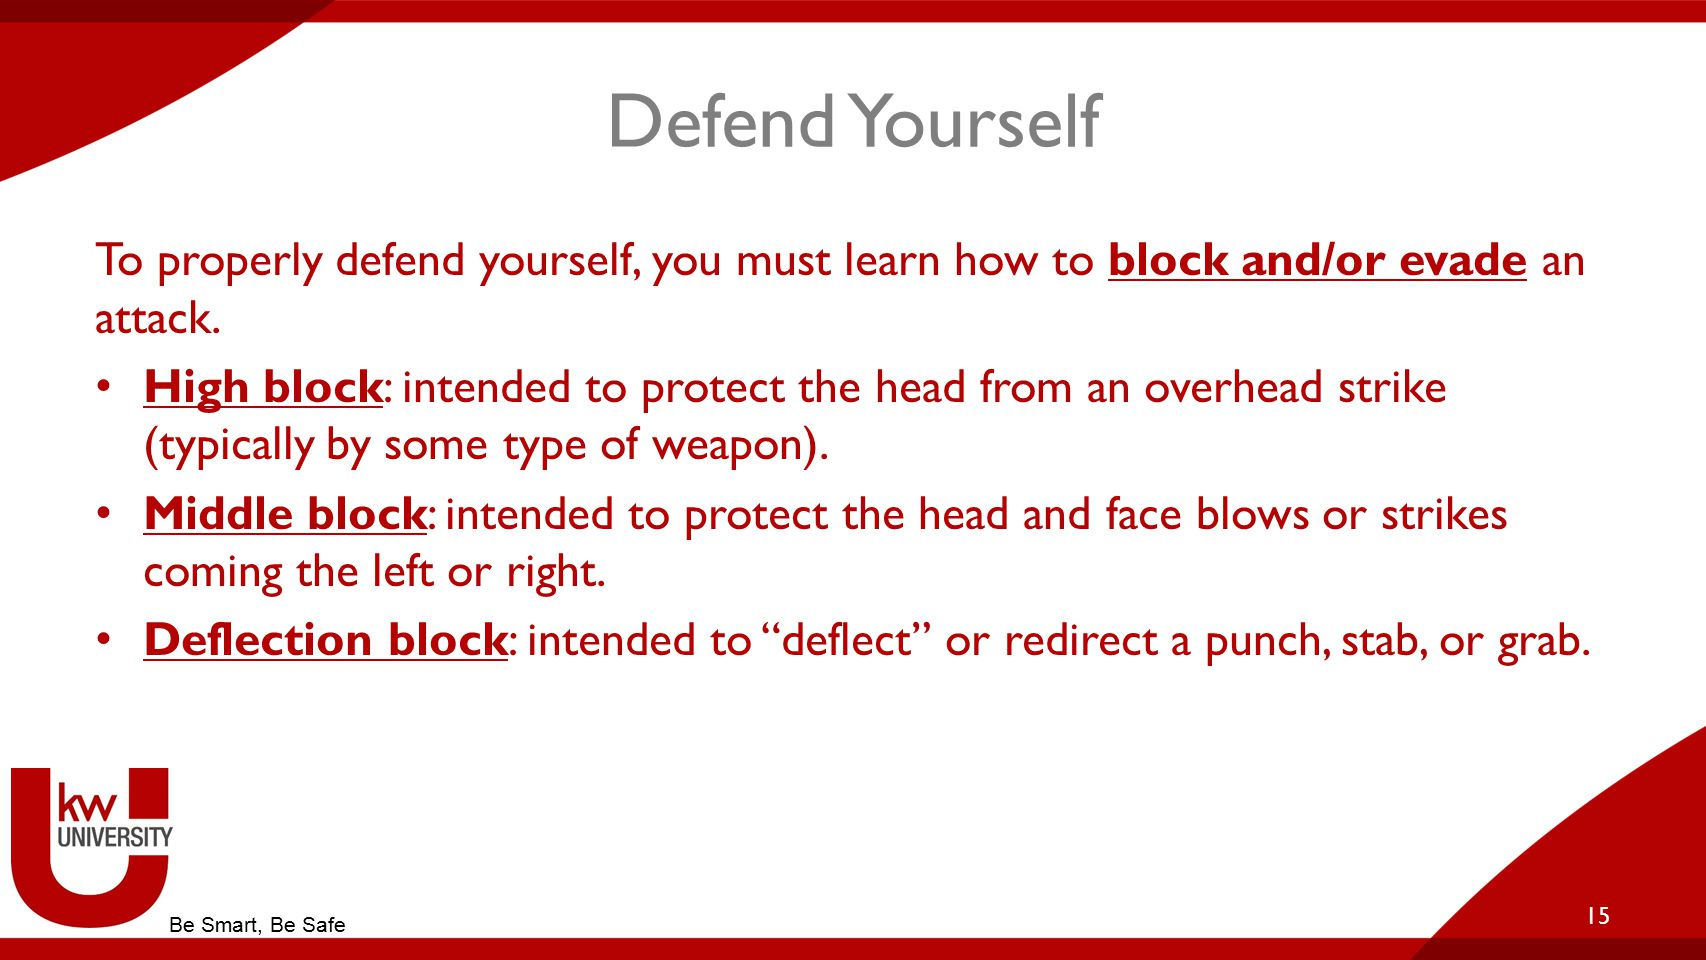 Defend Yourself To properly defend yourself, you must learn how to block and/or evade an attack.